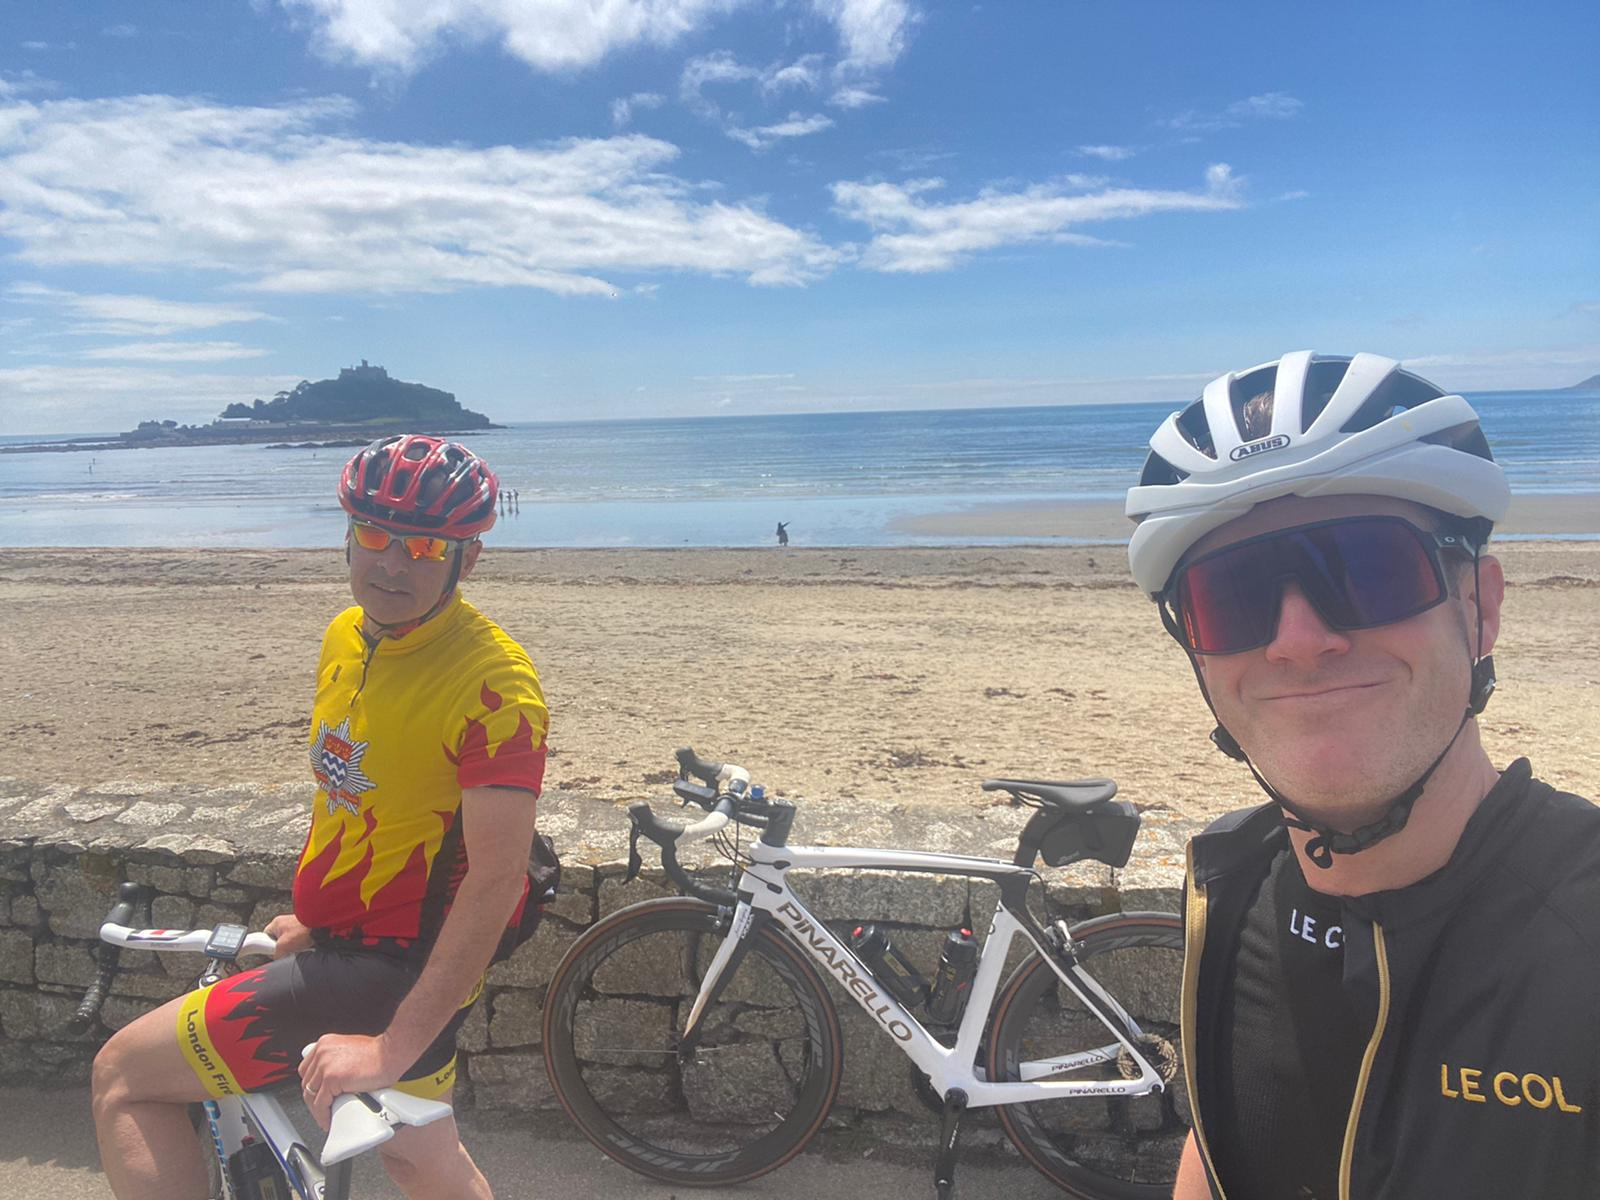 Day 1 - Lands End to Fowey